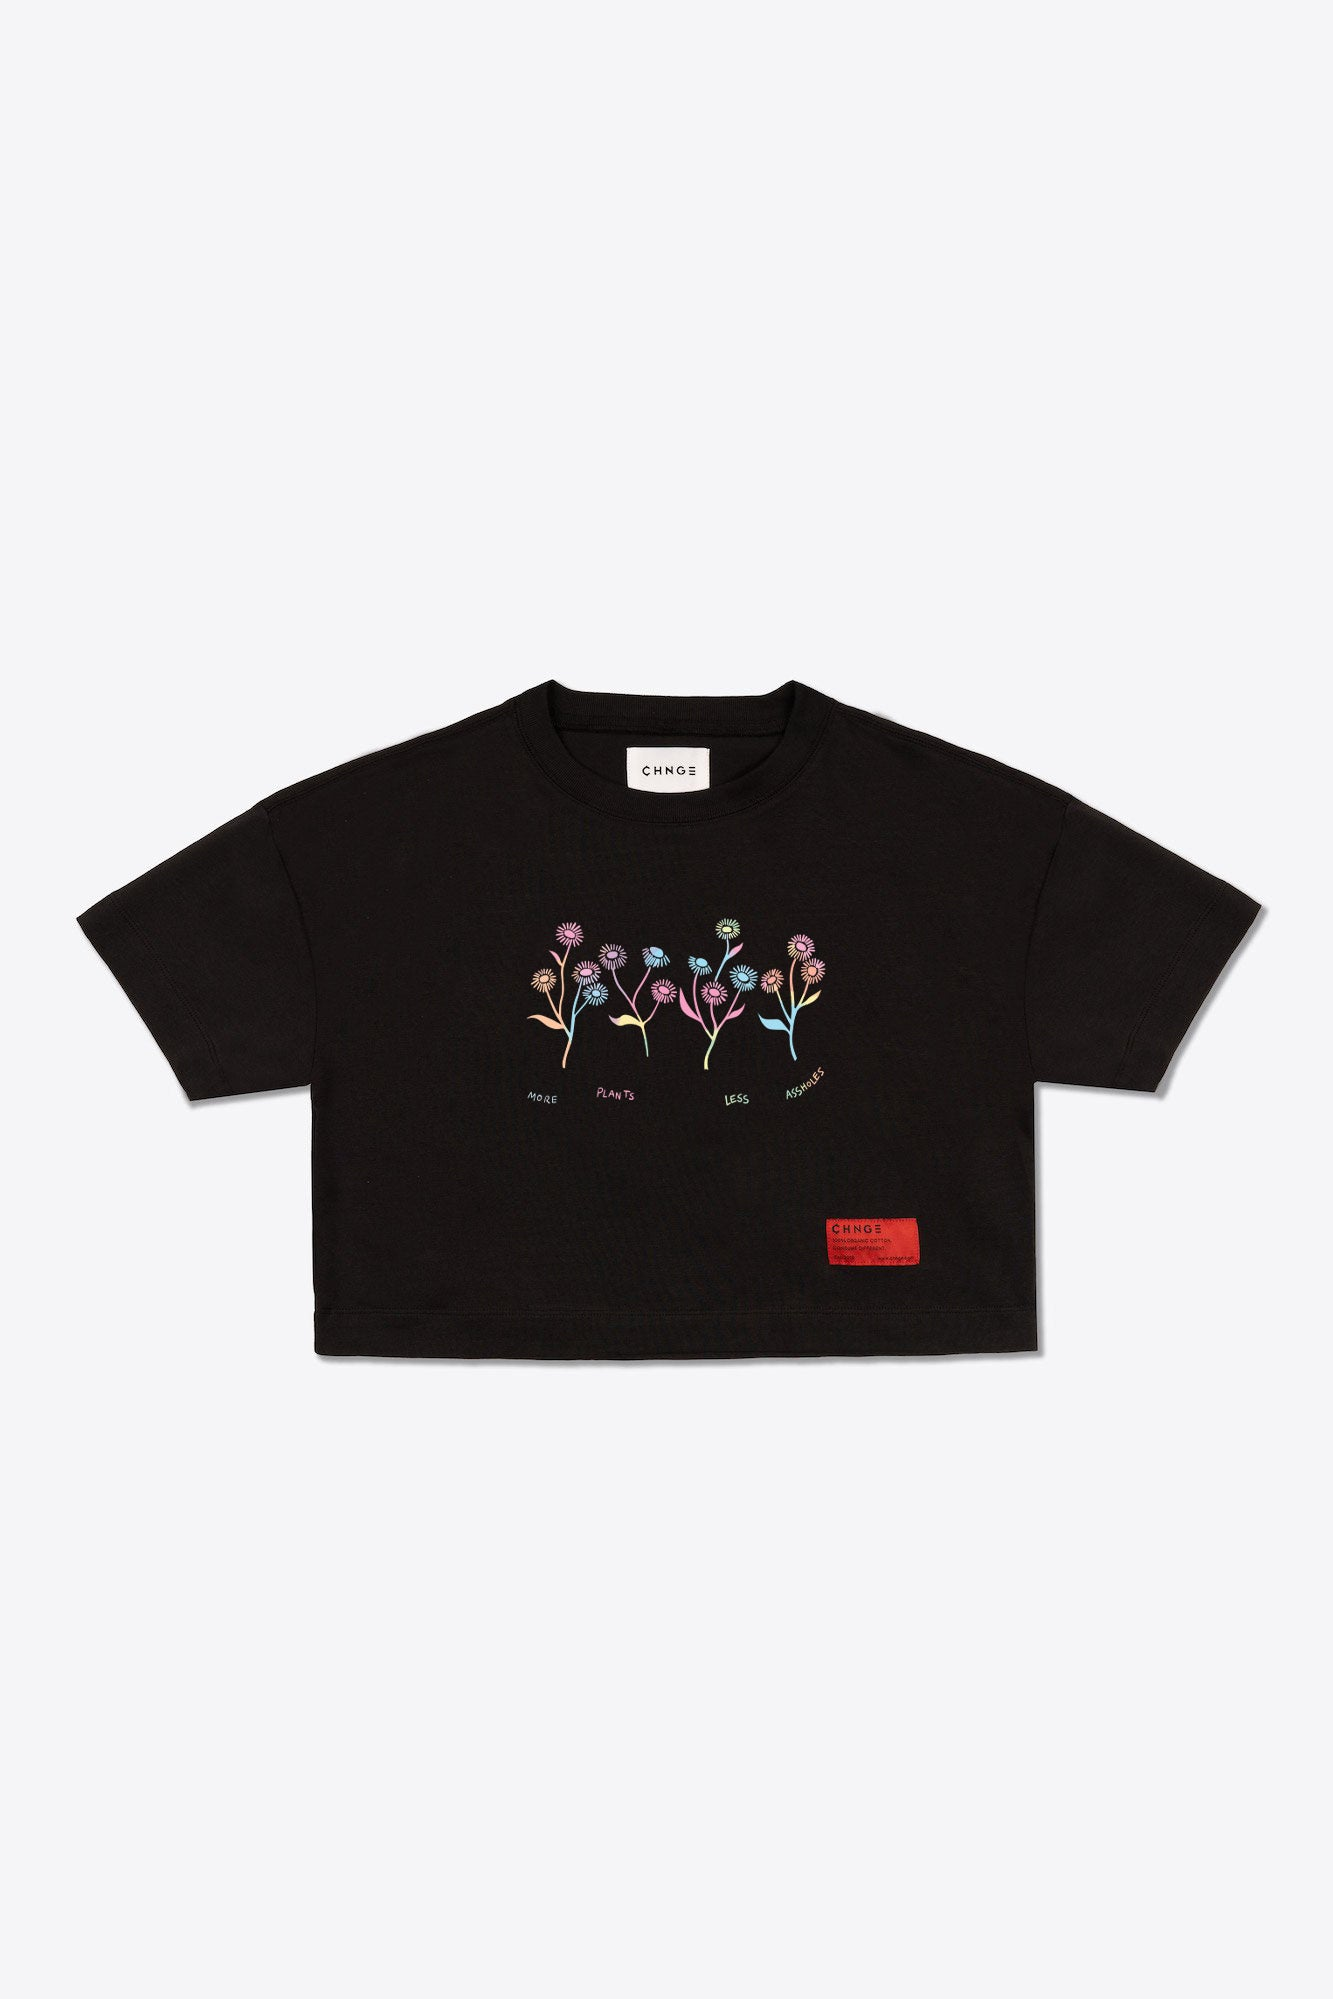 More Plants Crop Top (Black)